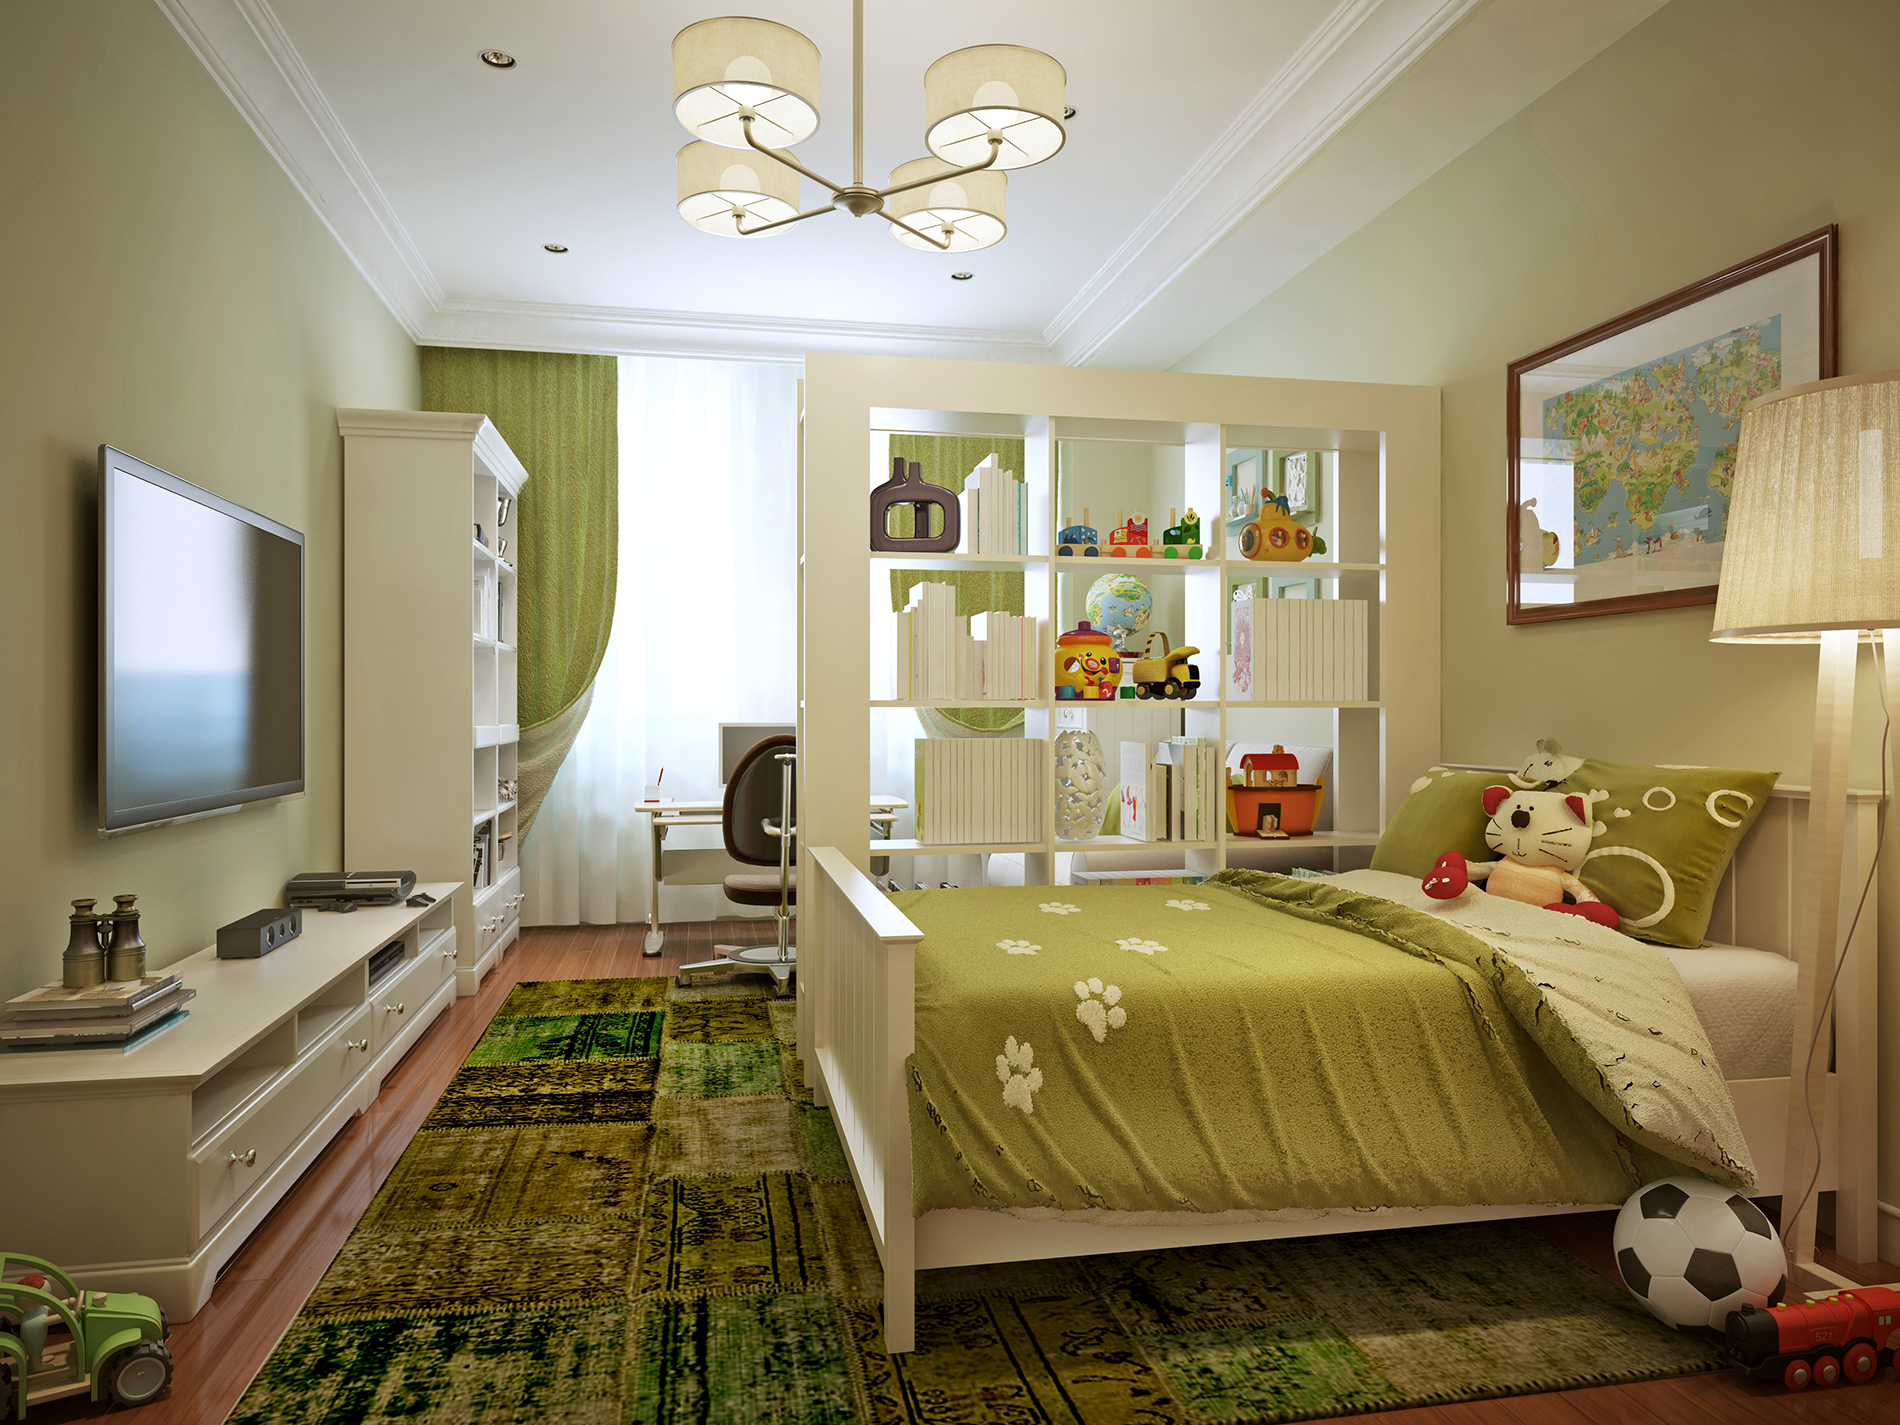 Bedroom TV and double bed 53189